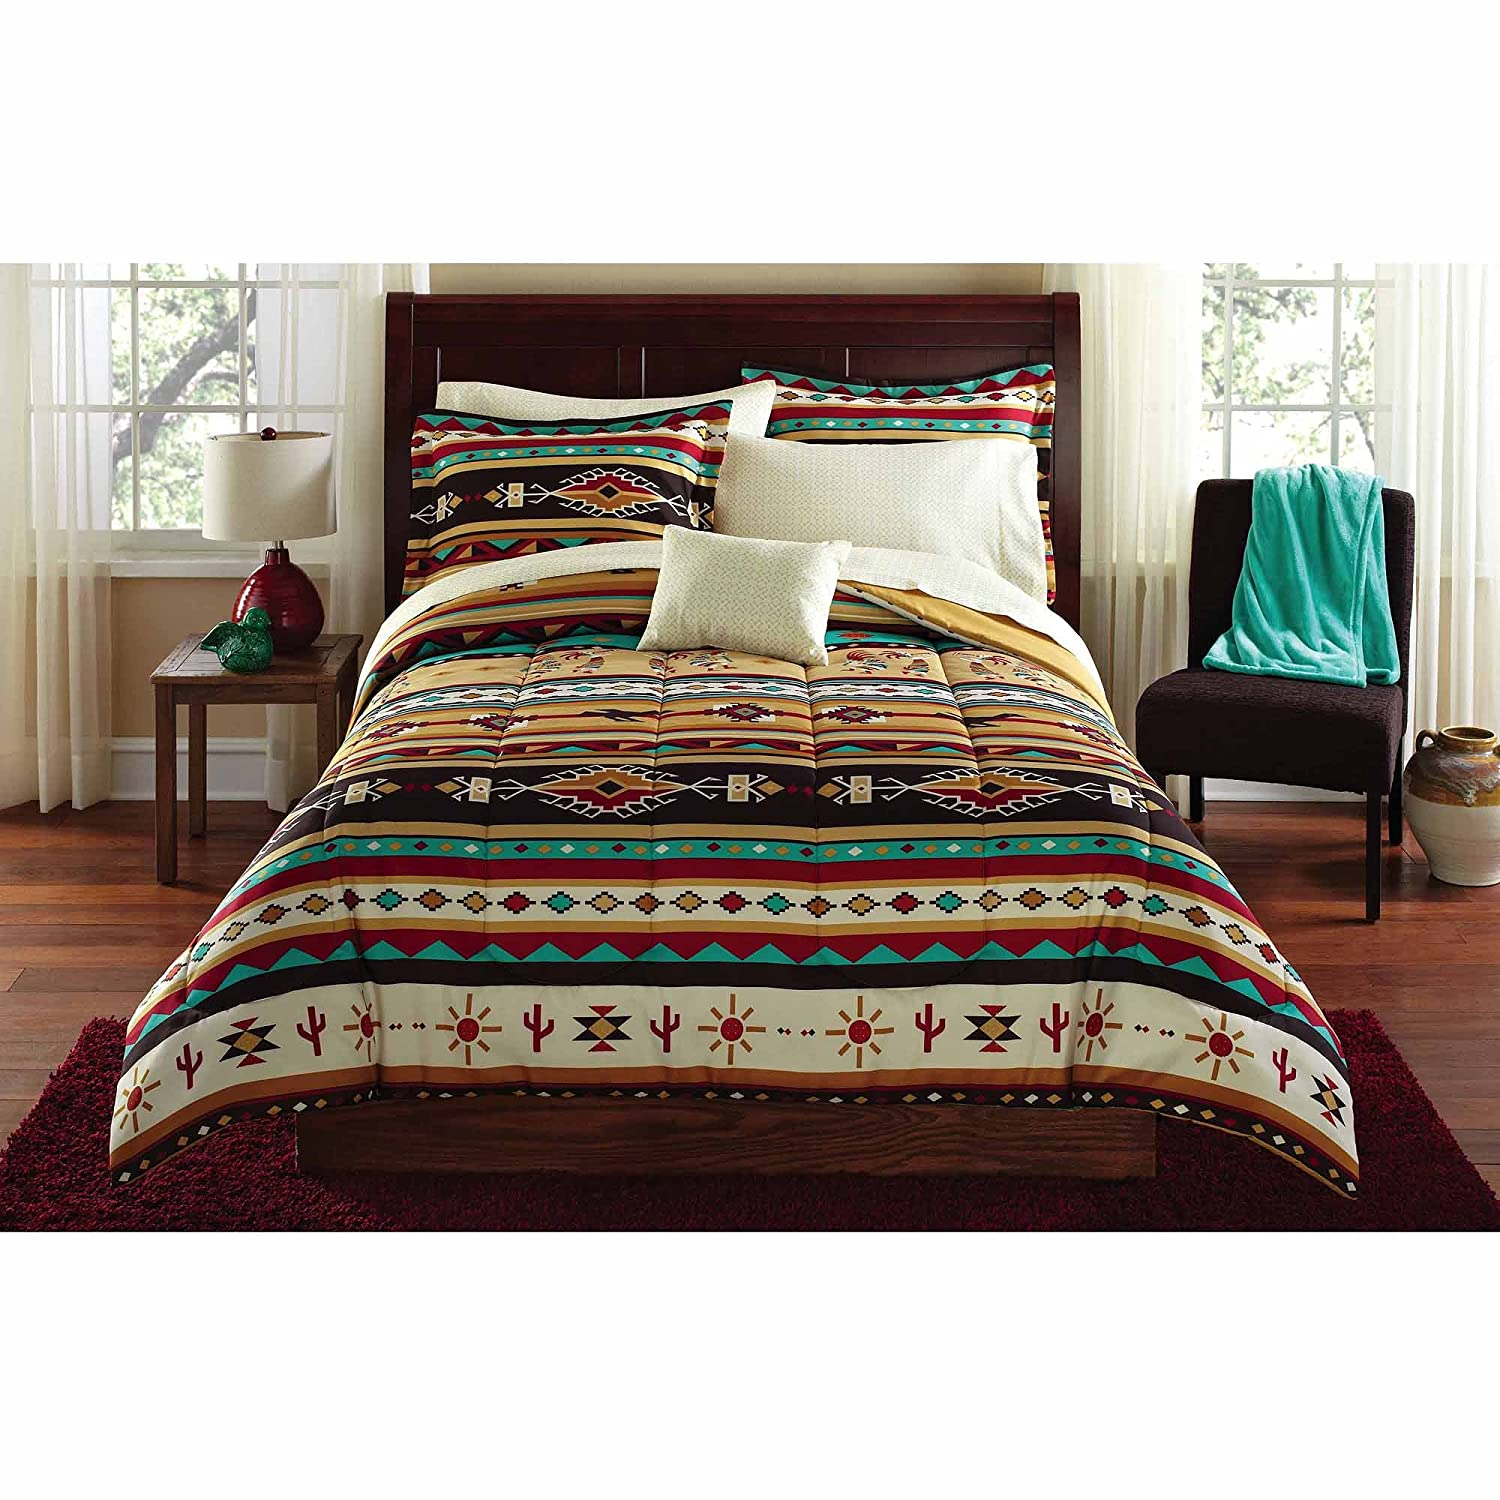 Southwest Turquoise Tan Red Native American Queen Comforter Set 8 Piece Bed In A Bag